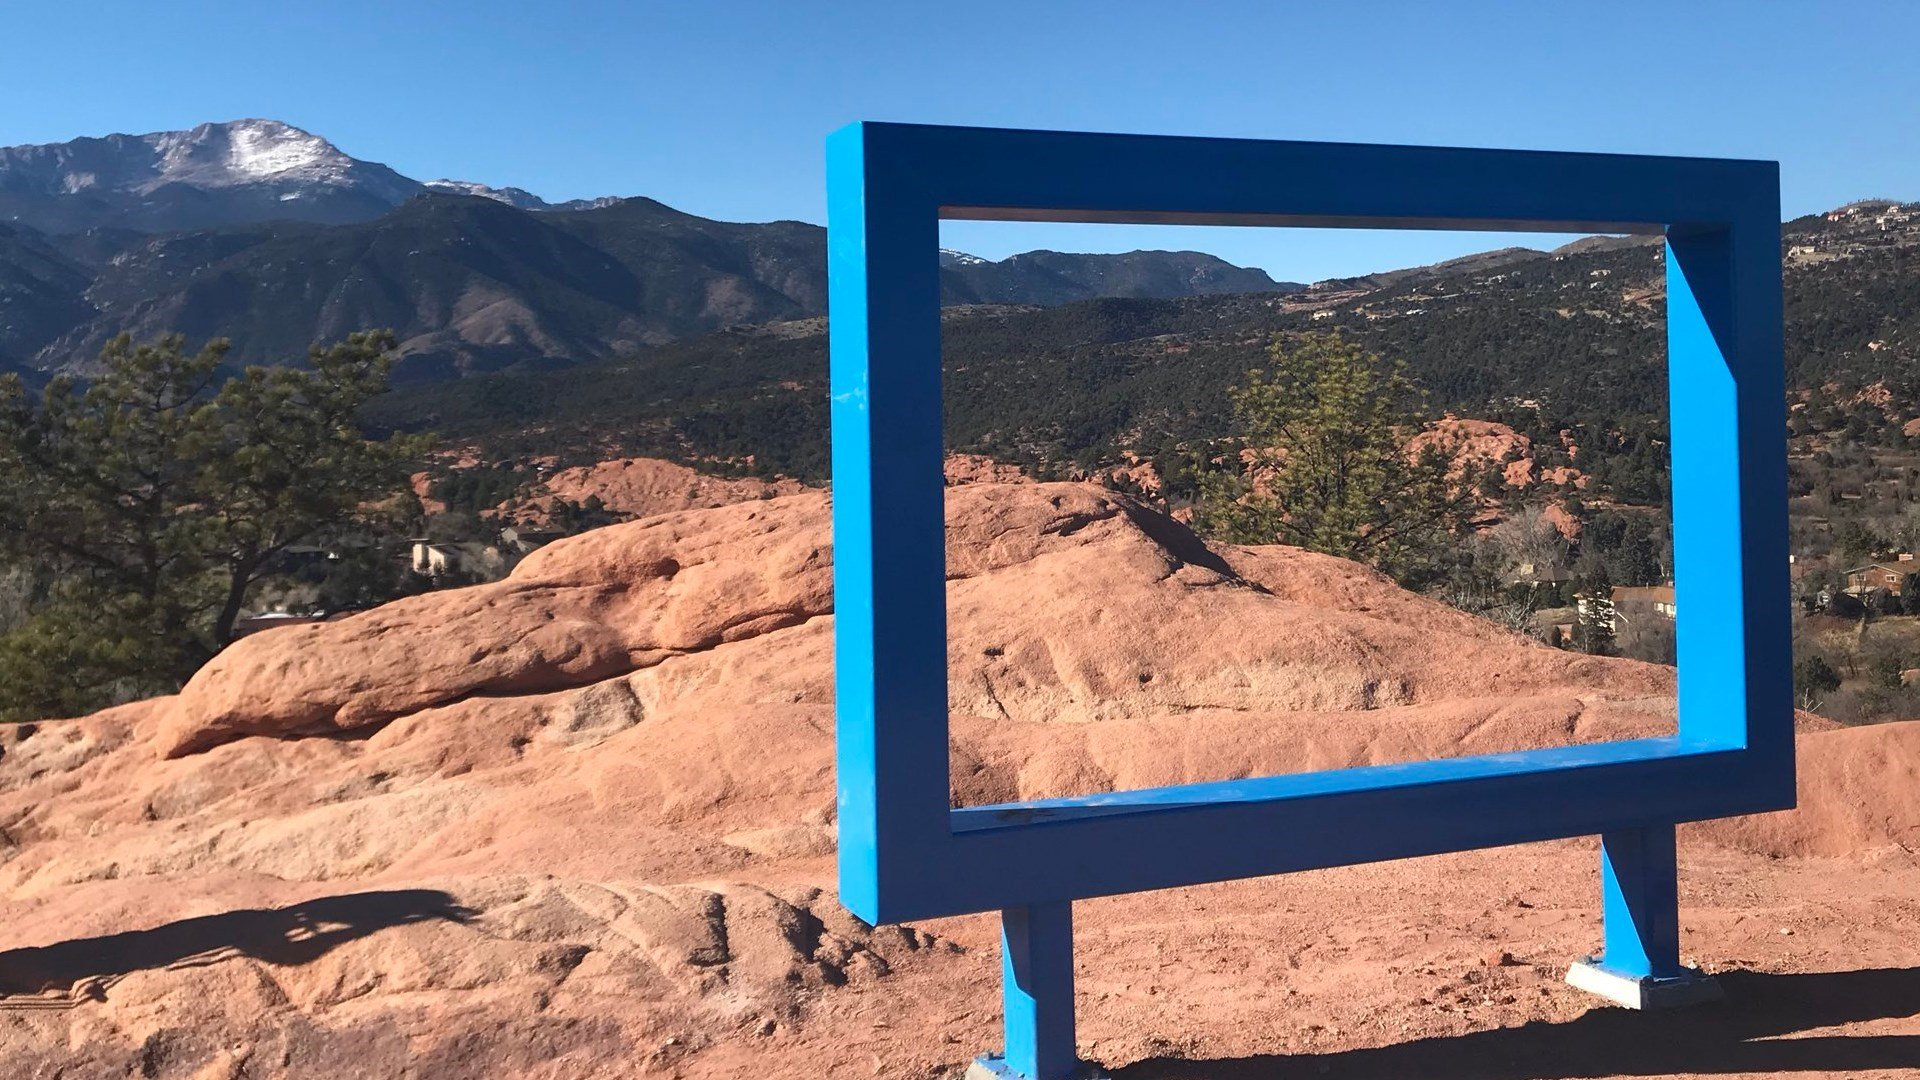 Visitors to the High Overlook at Garden of the Gods will find this giant frame intended for tourist use in photos. (KOAA)